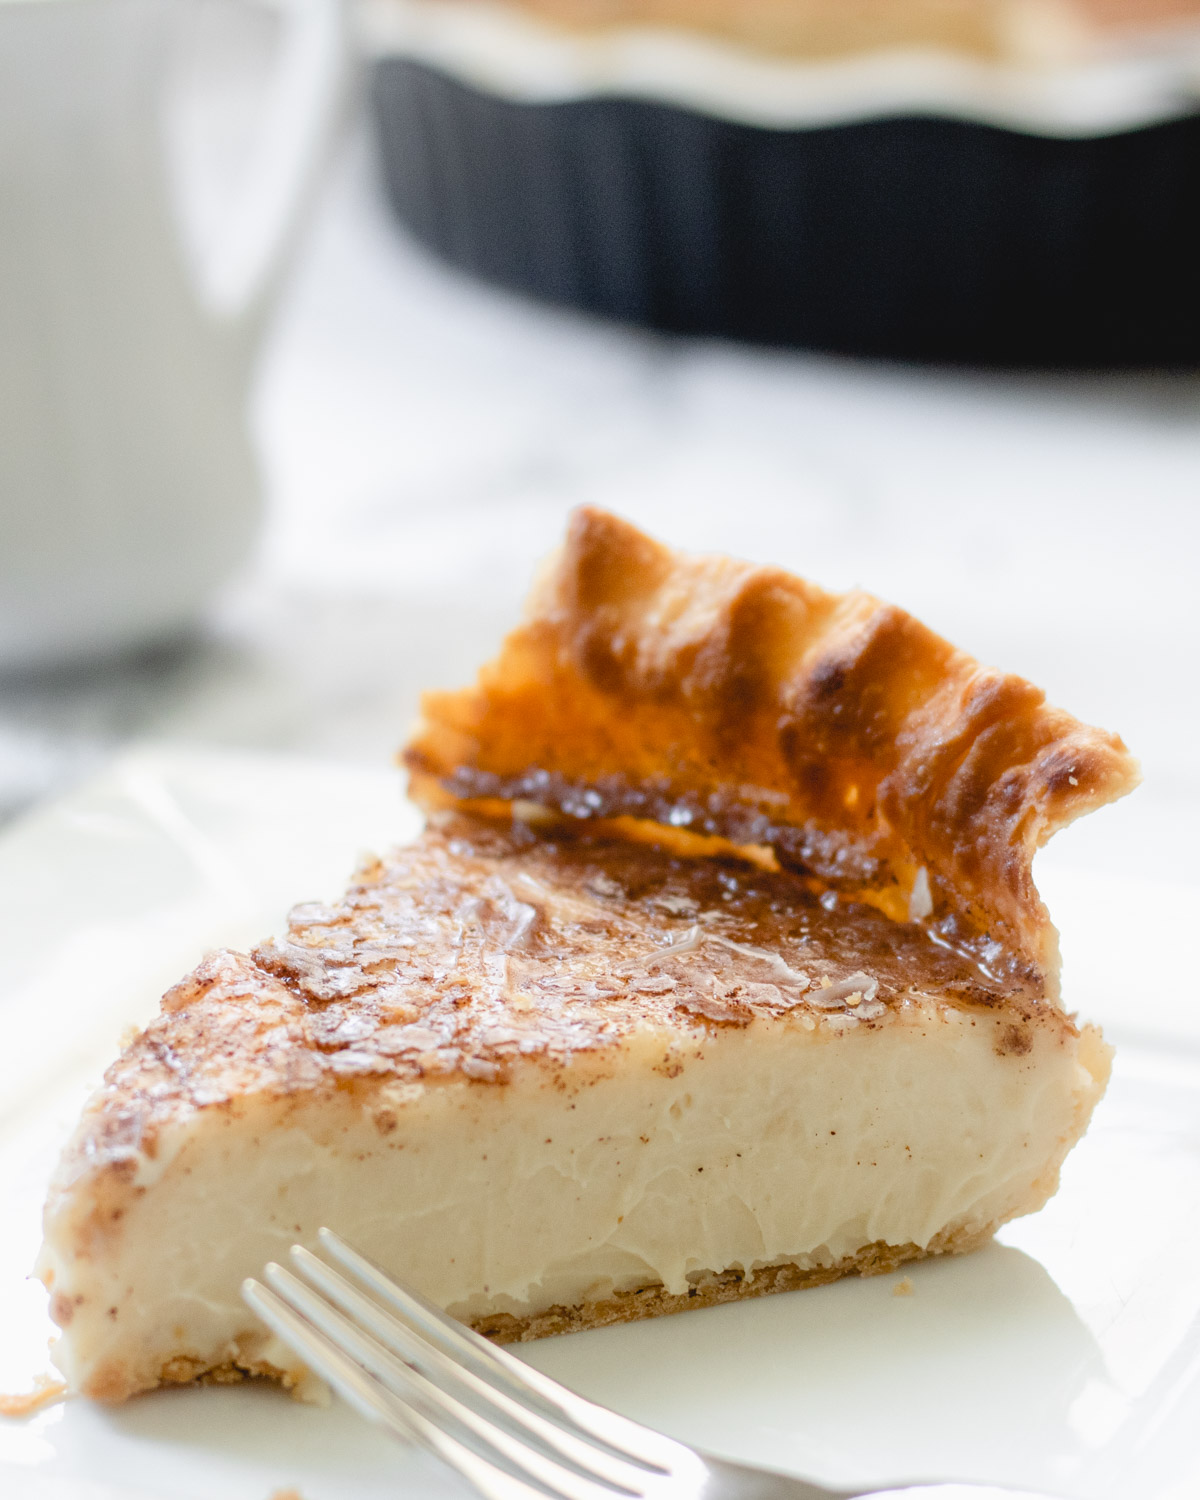 Slice of sugar cream pie topped with caramelized cinnamon sugar, on a plate with a fork.